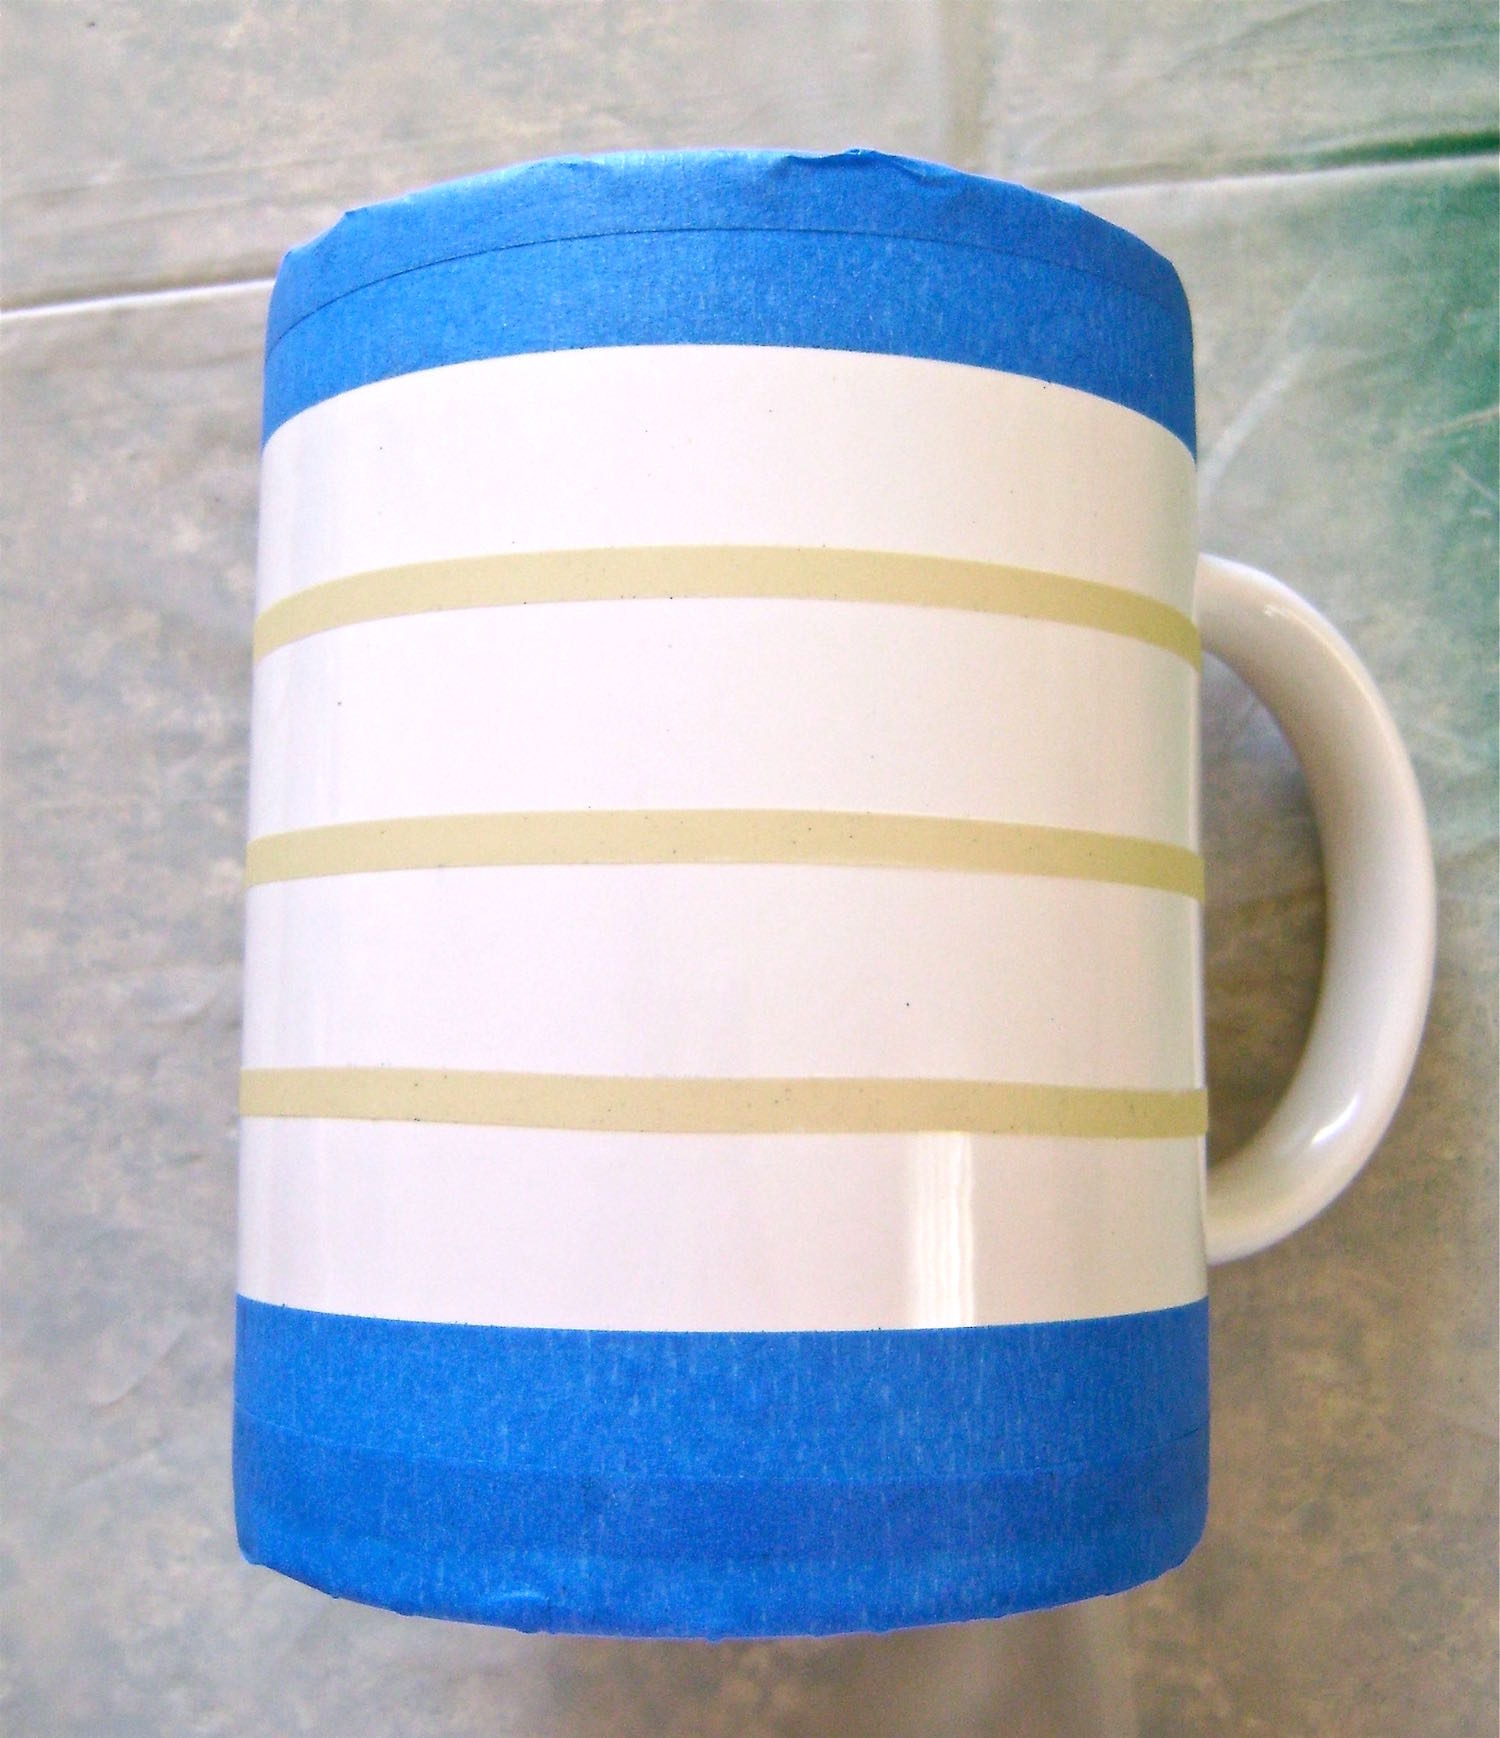 """step 4 -Measuring 1"""" from the edge of the top masking tape, place ¼"""" tape around the mug, stopping at the vertical tapeline. Place two more lines around the mug positioned 1"""" apart."""